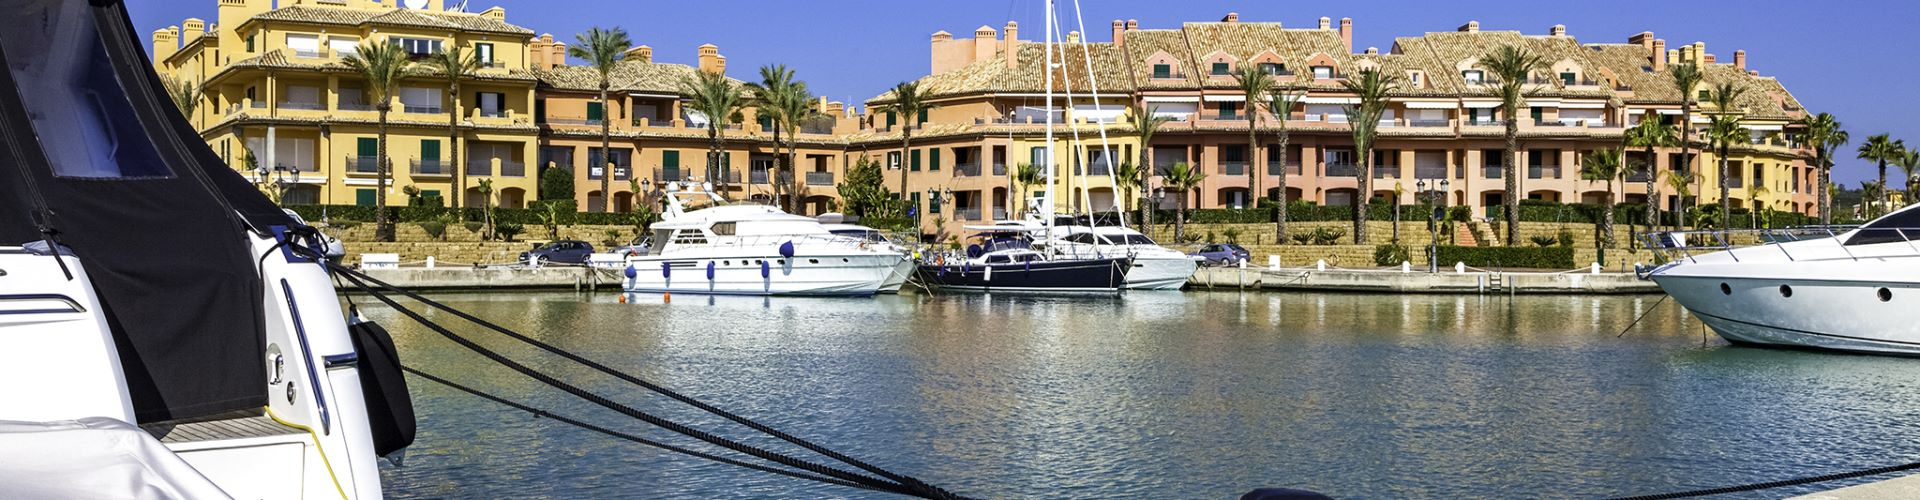 The history and local areas of Sotogrande